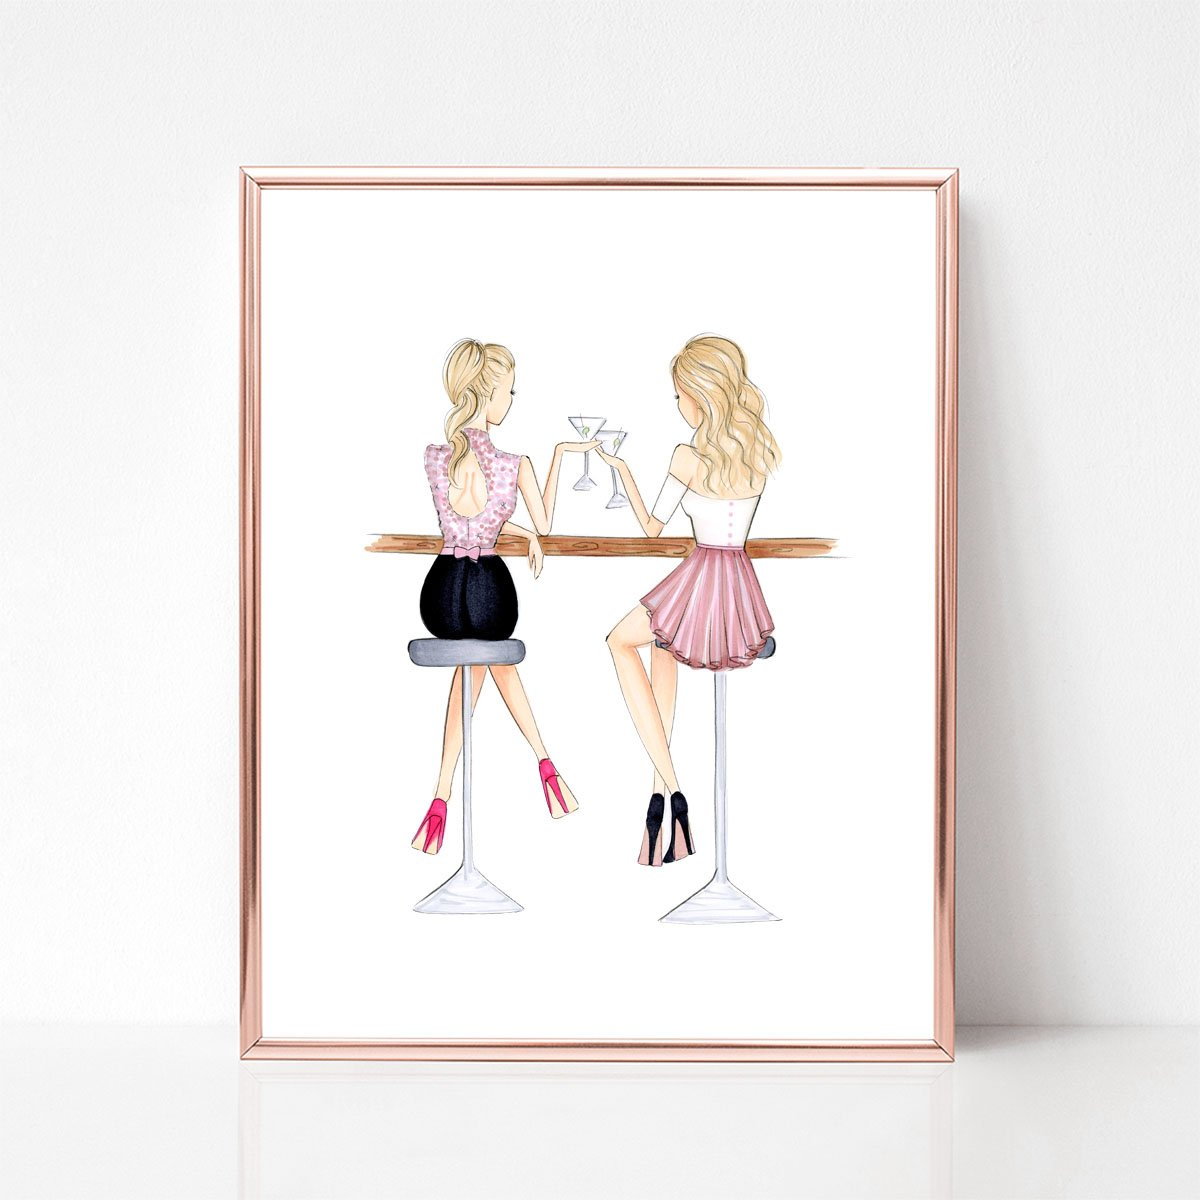 Unframed customizable BFF fashion illustration art print